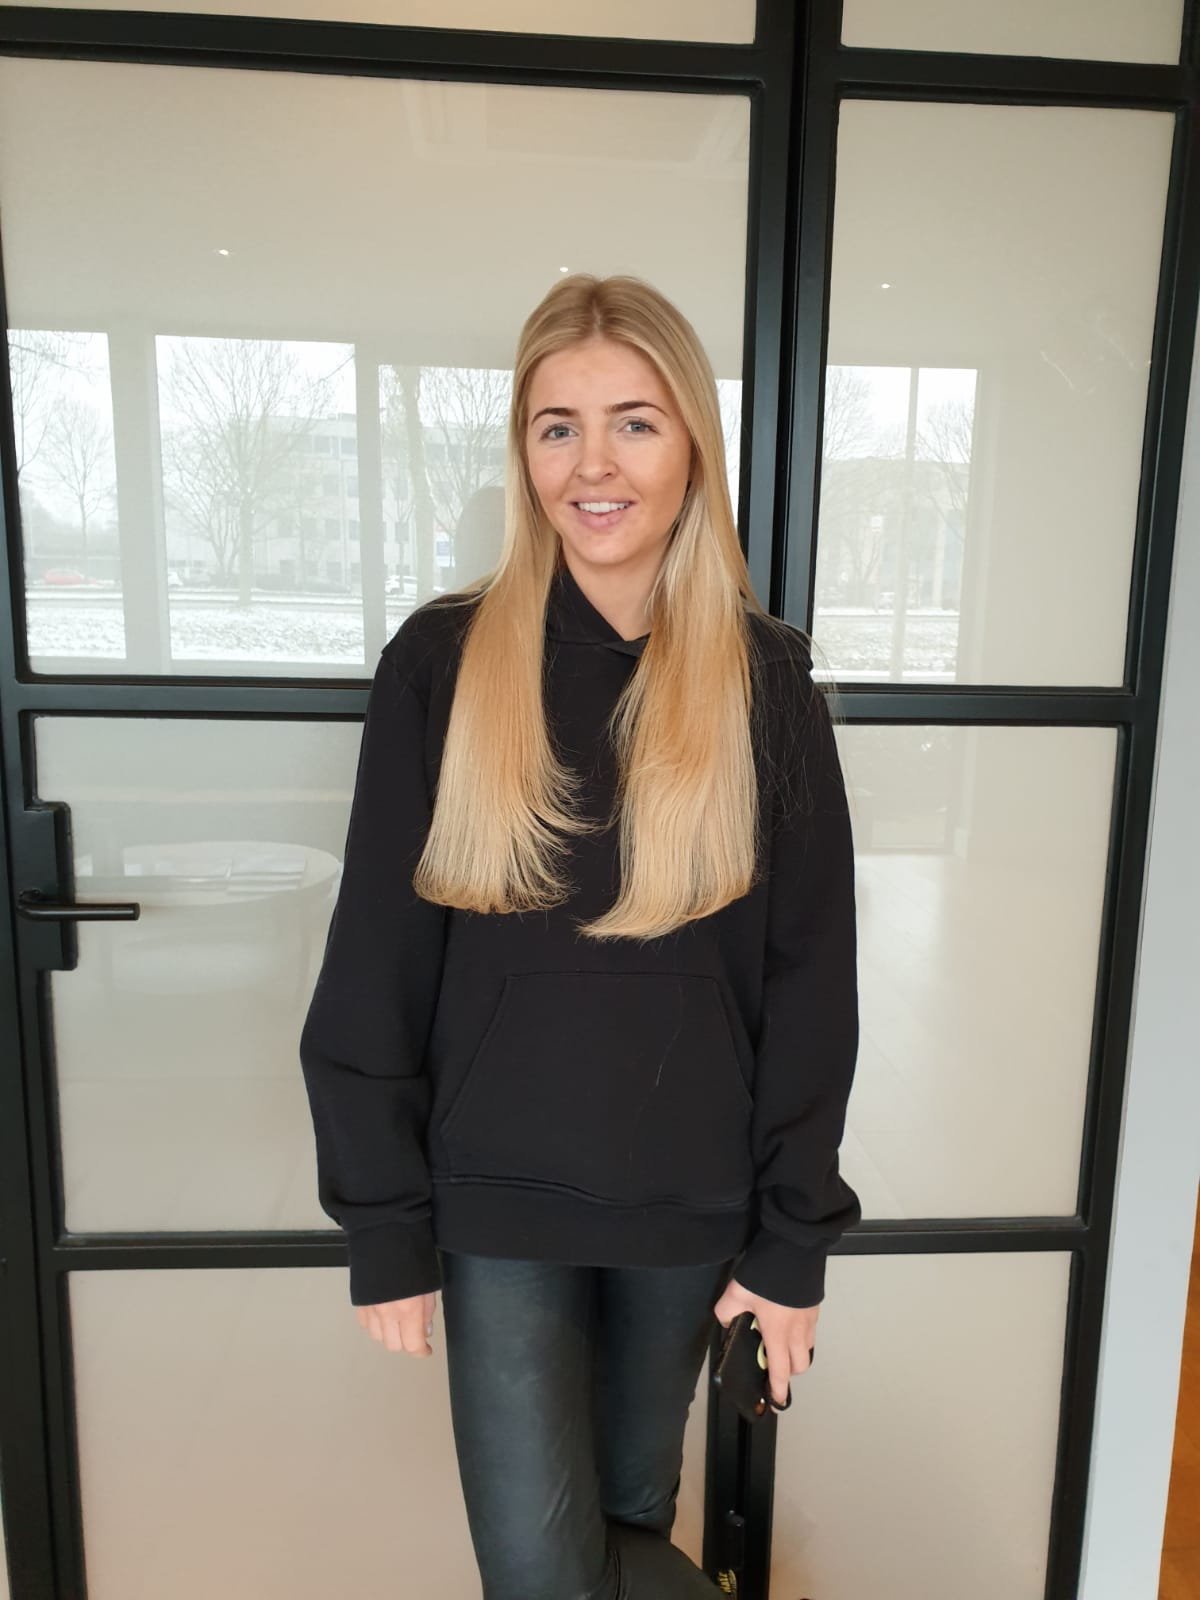 Lizzy Perridon met hairextensions van Beauty by Roos na